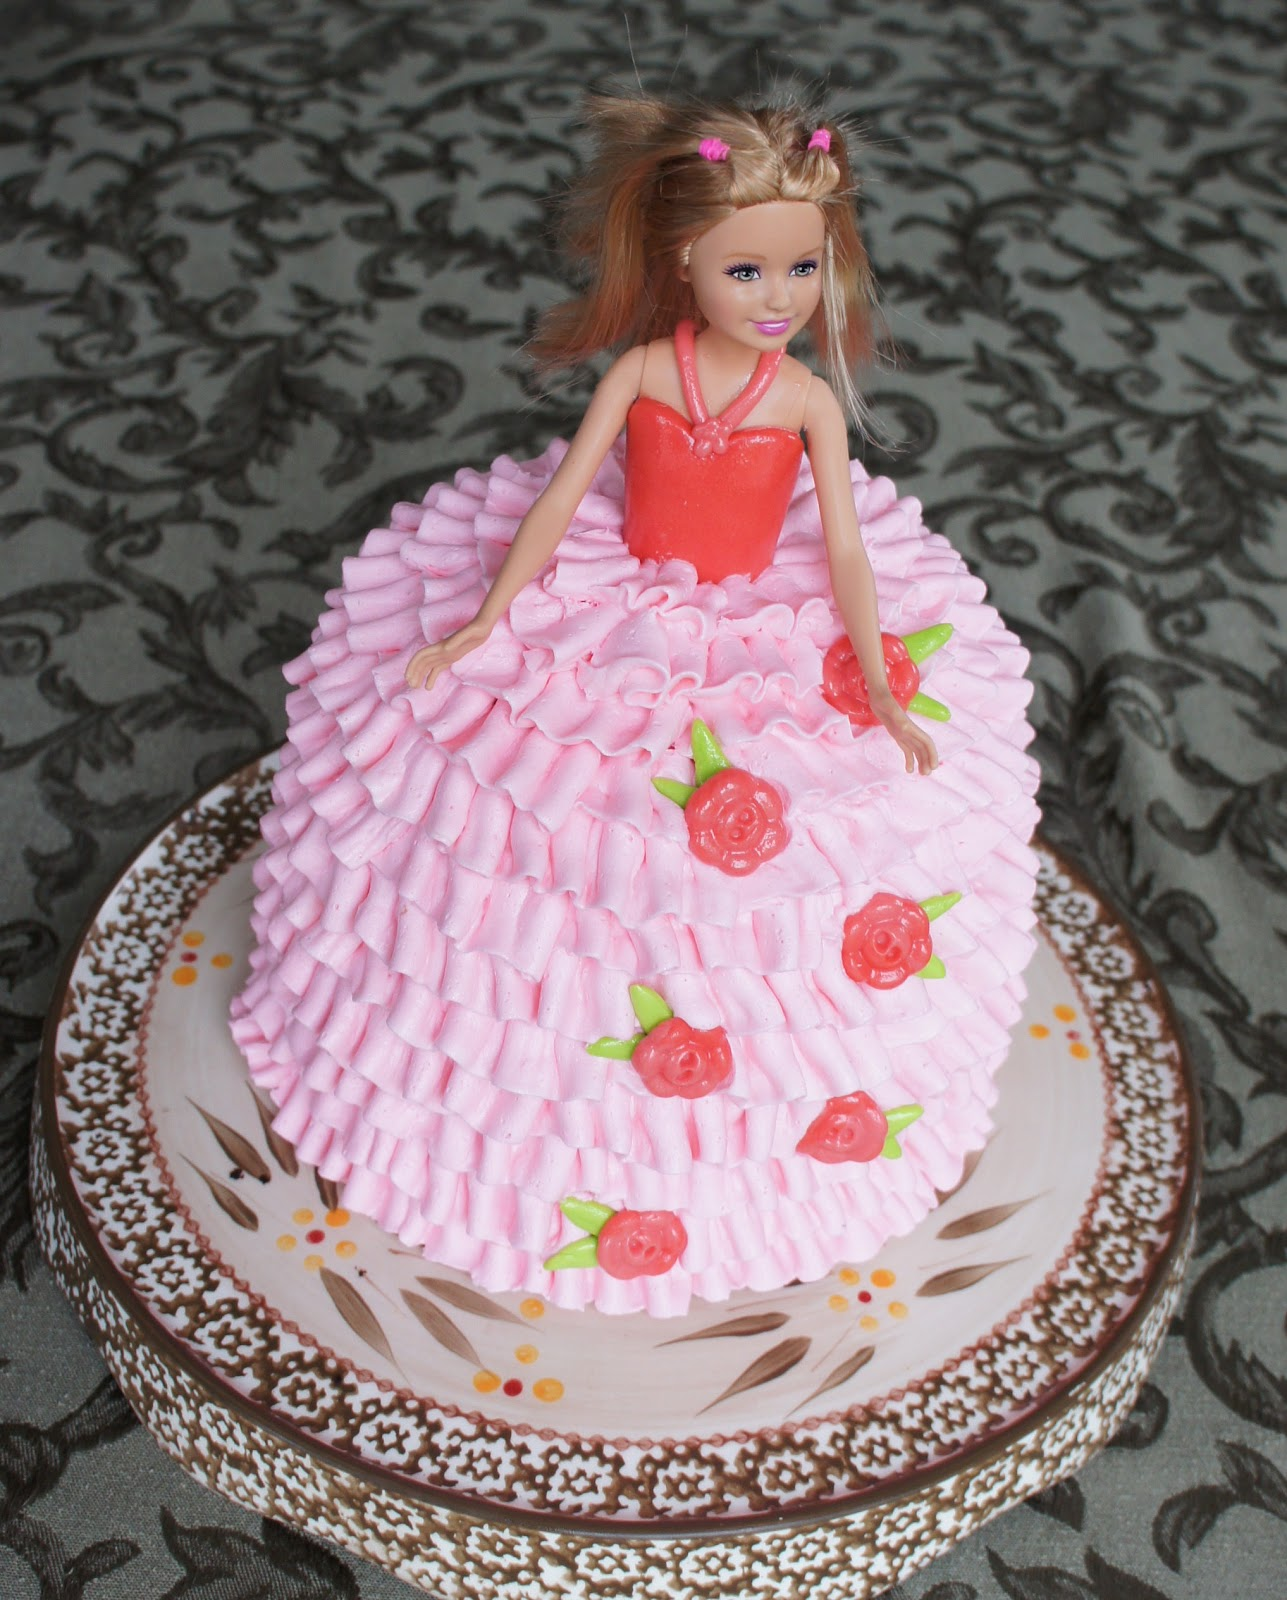 Cake Decoration Doll : Montreal Confections: Doll Birthday Cake